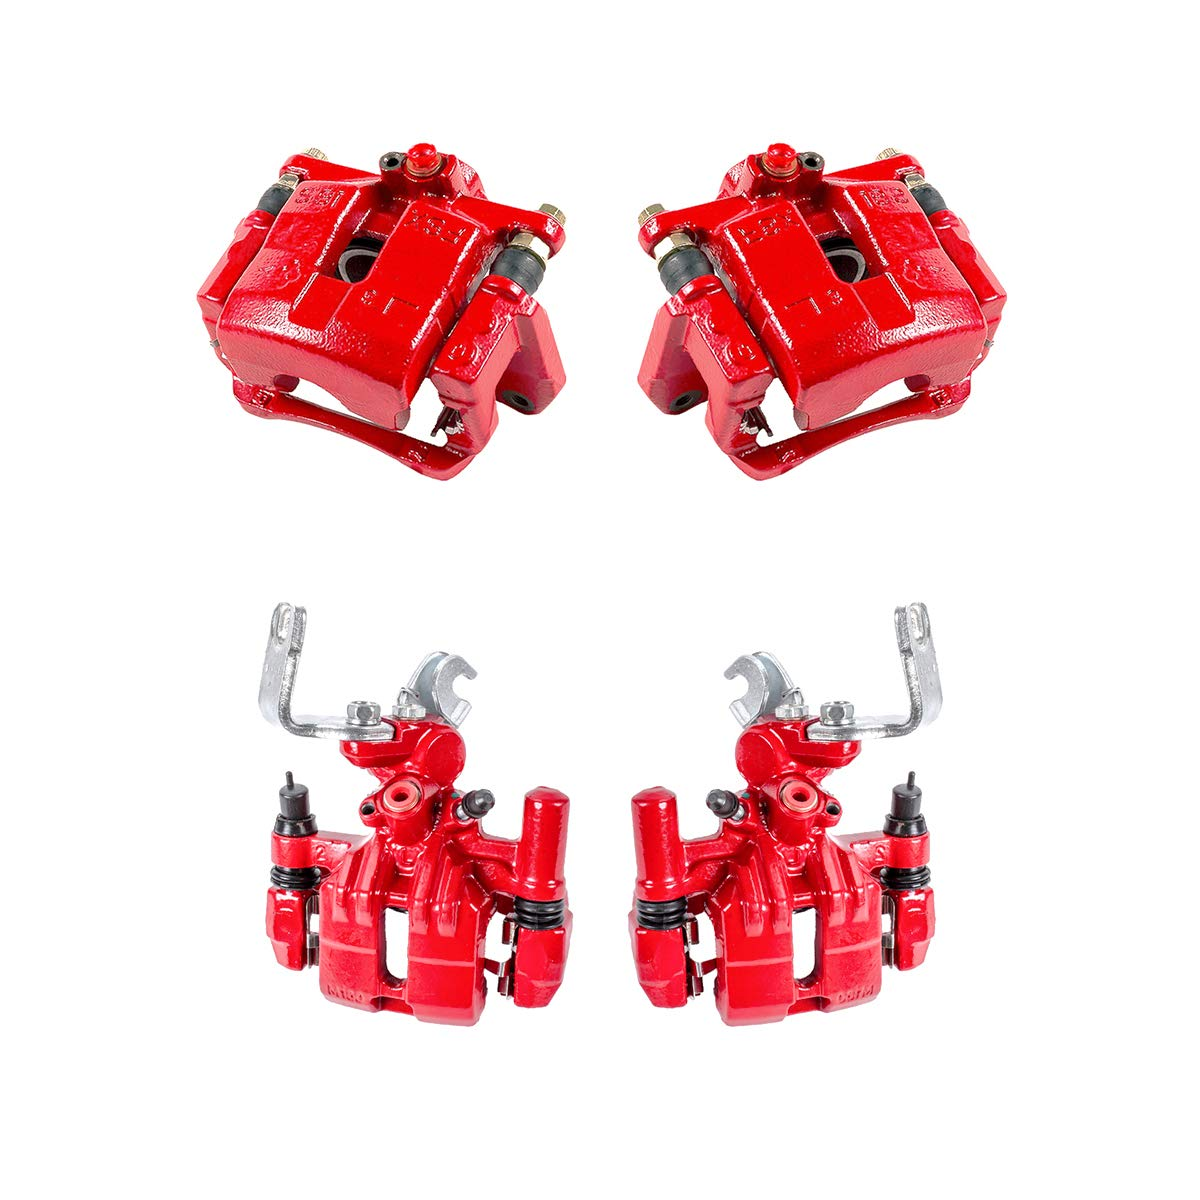 Callahan CCK03866 4 FRONT Hardware Brake Kit REAR Premium Semi-Loaded Red Coated Calipers